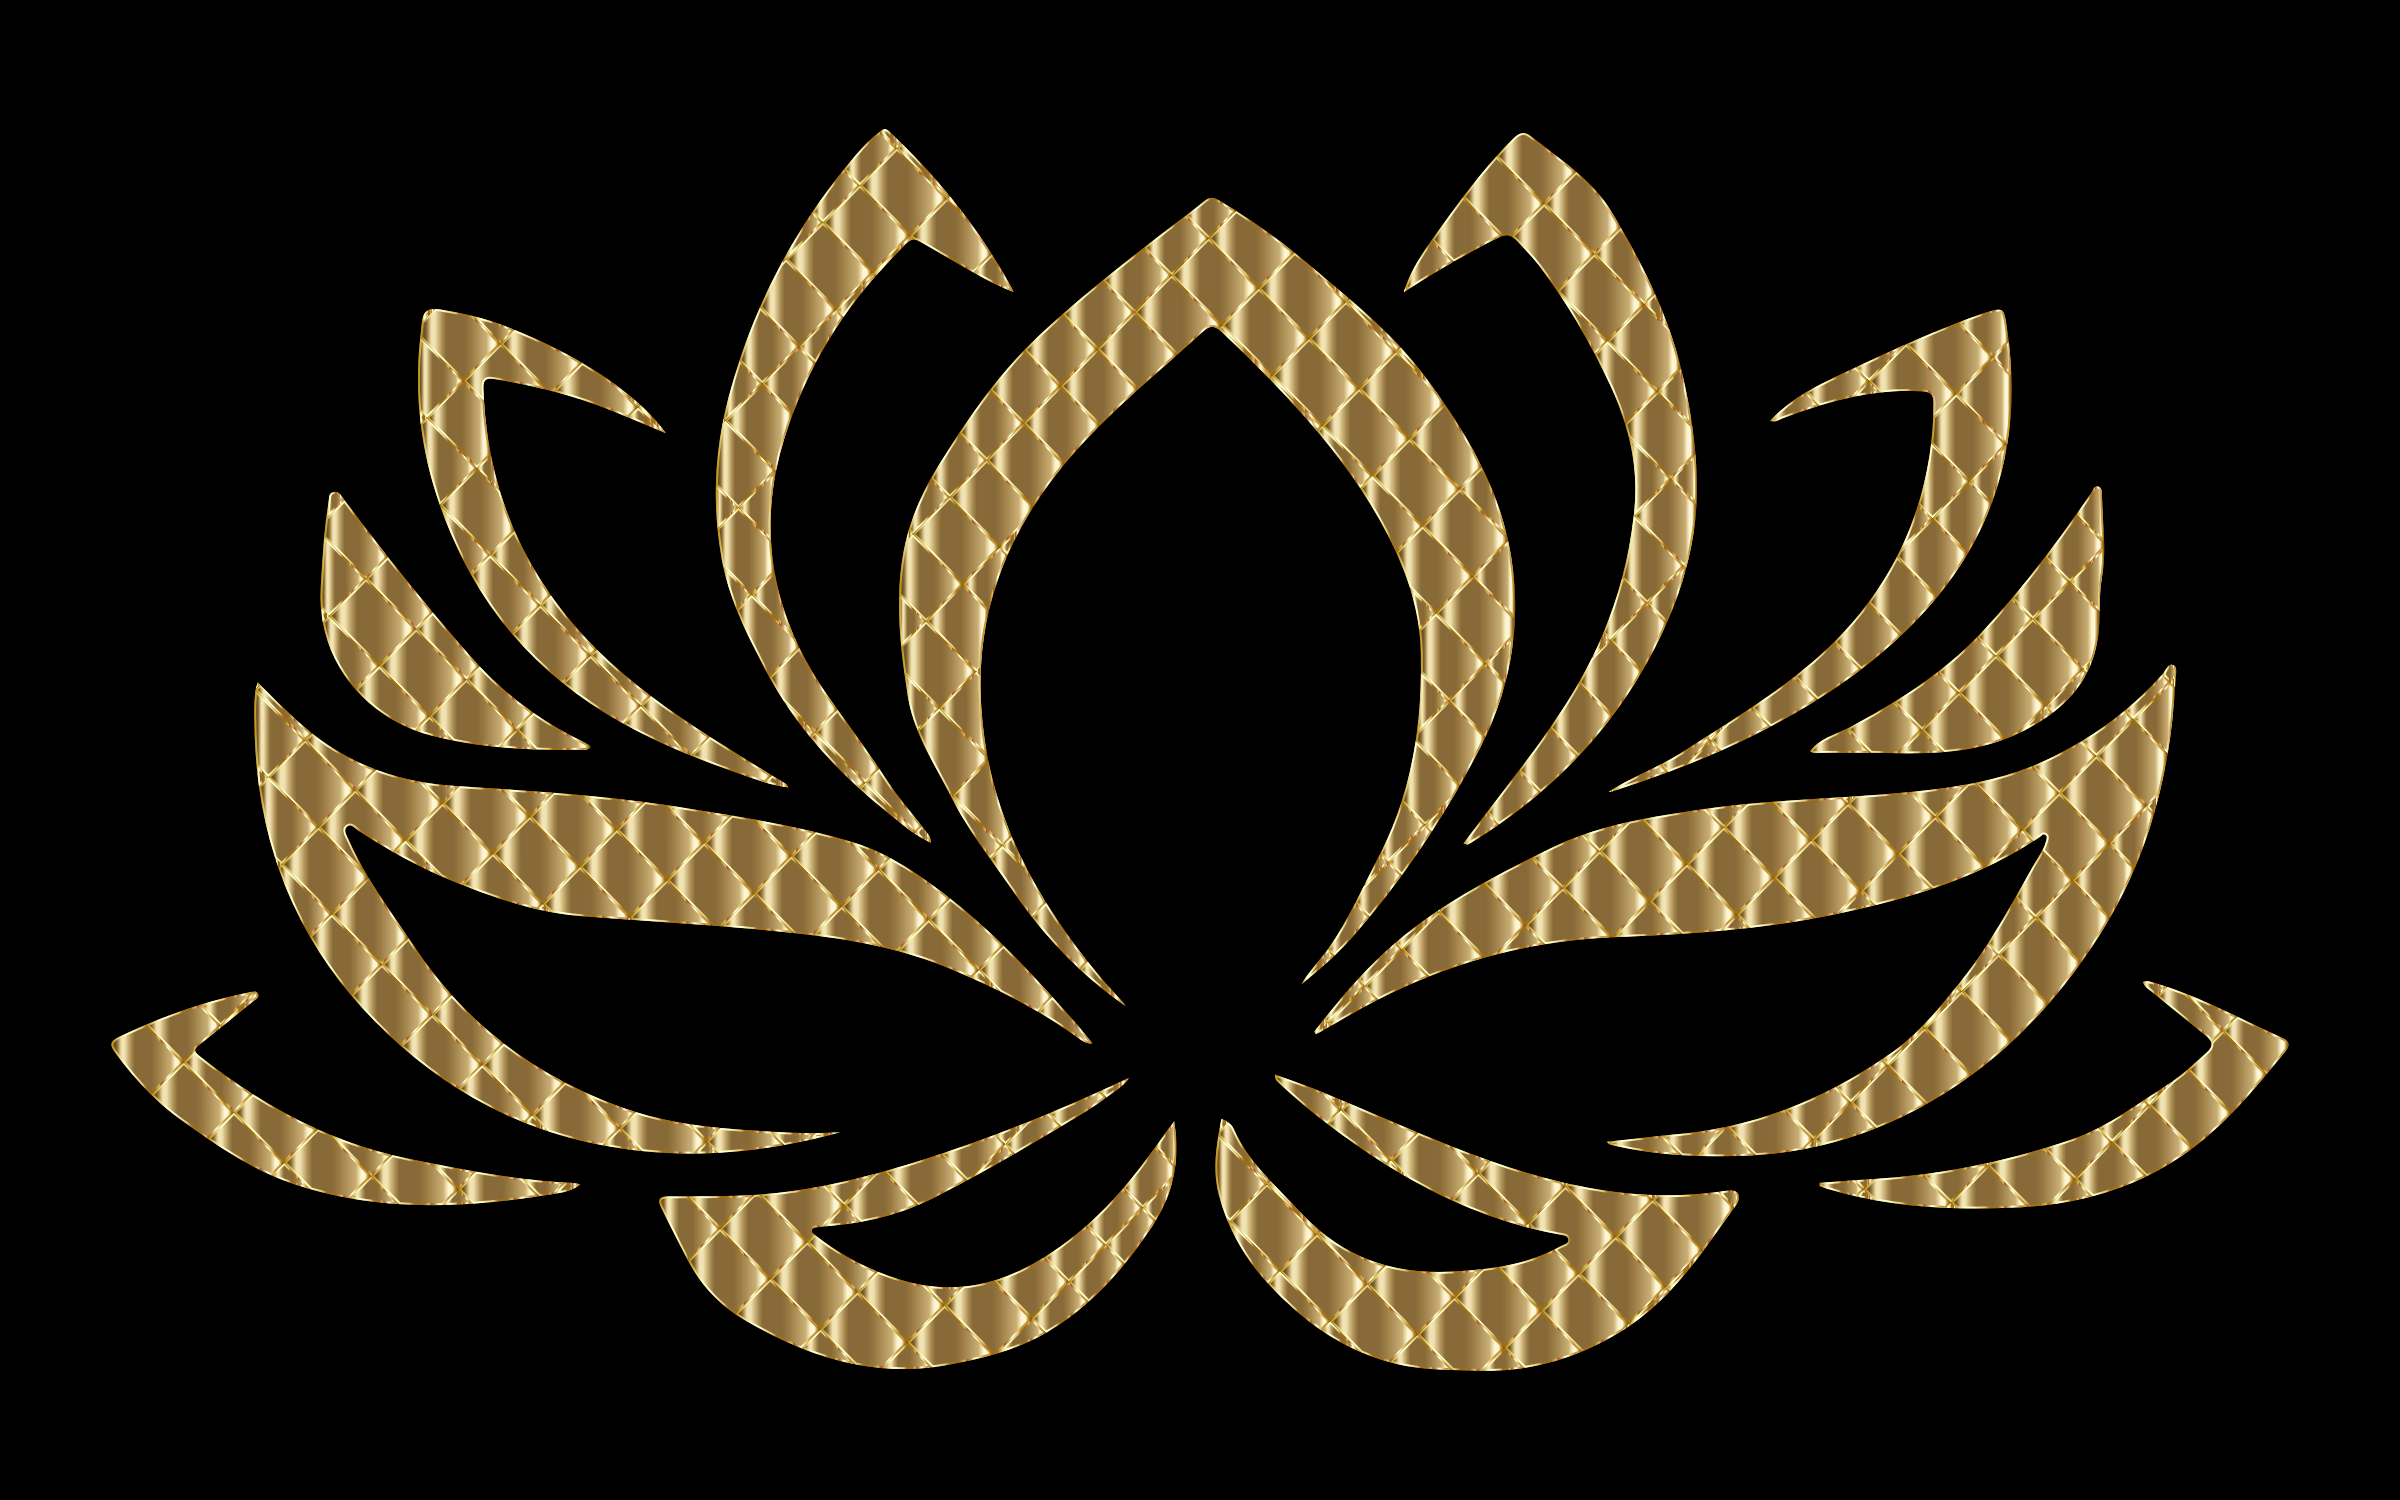 Golden Lotus Flower 4 by GDJ